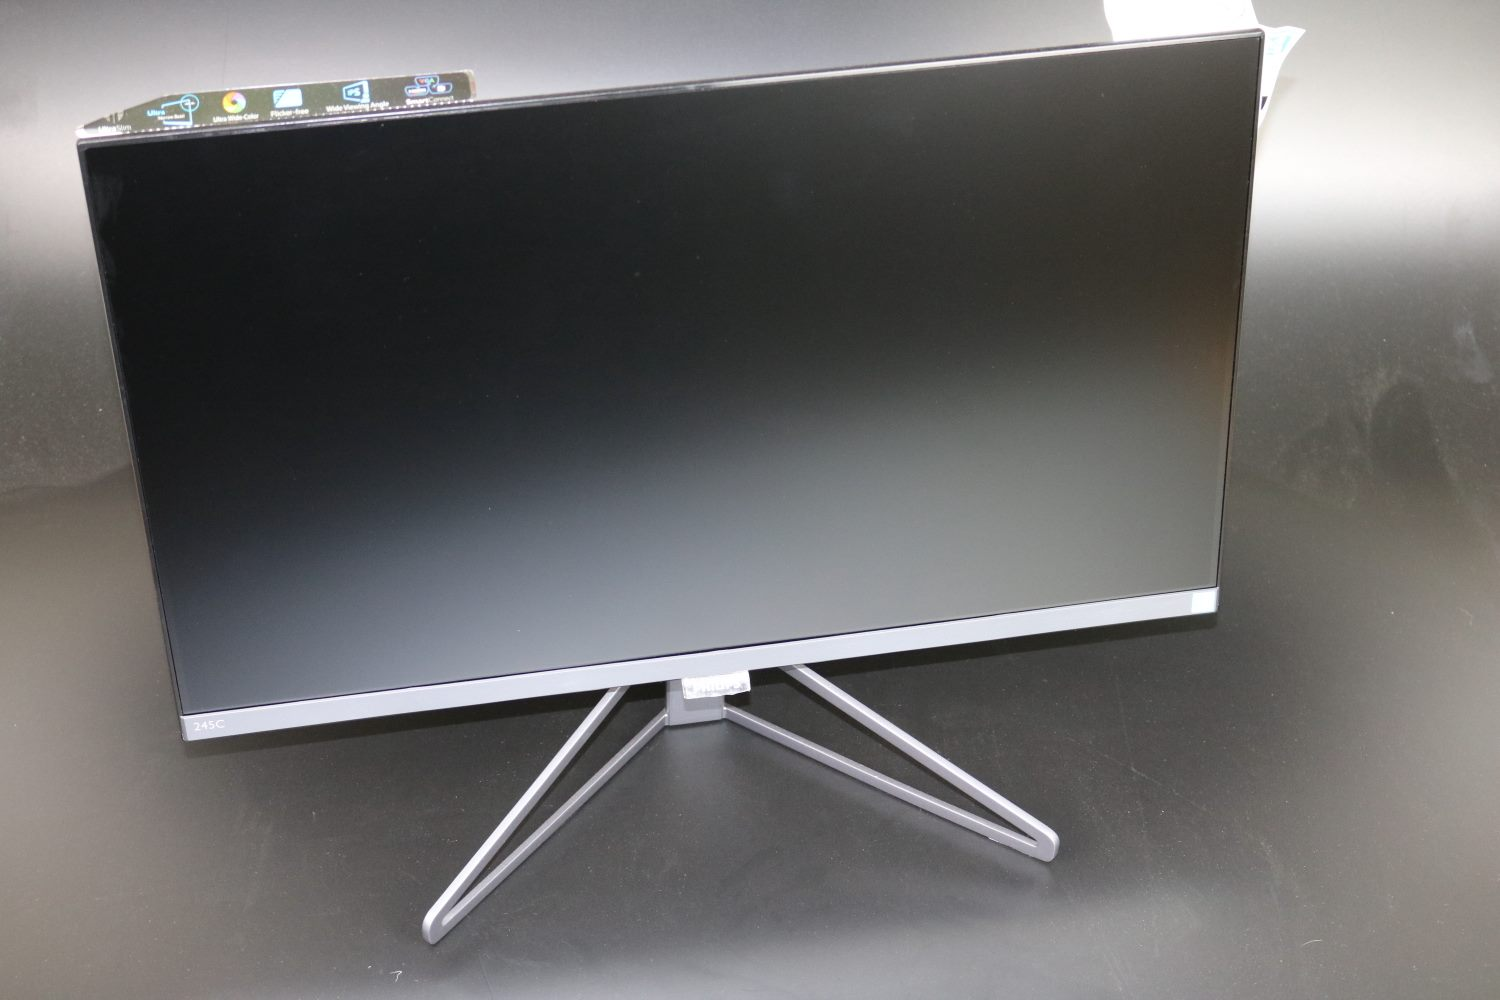 Philips 245C7QJSB Monitor im Test by technikblog